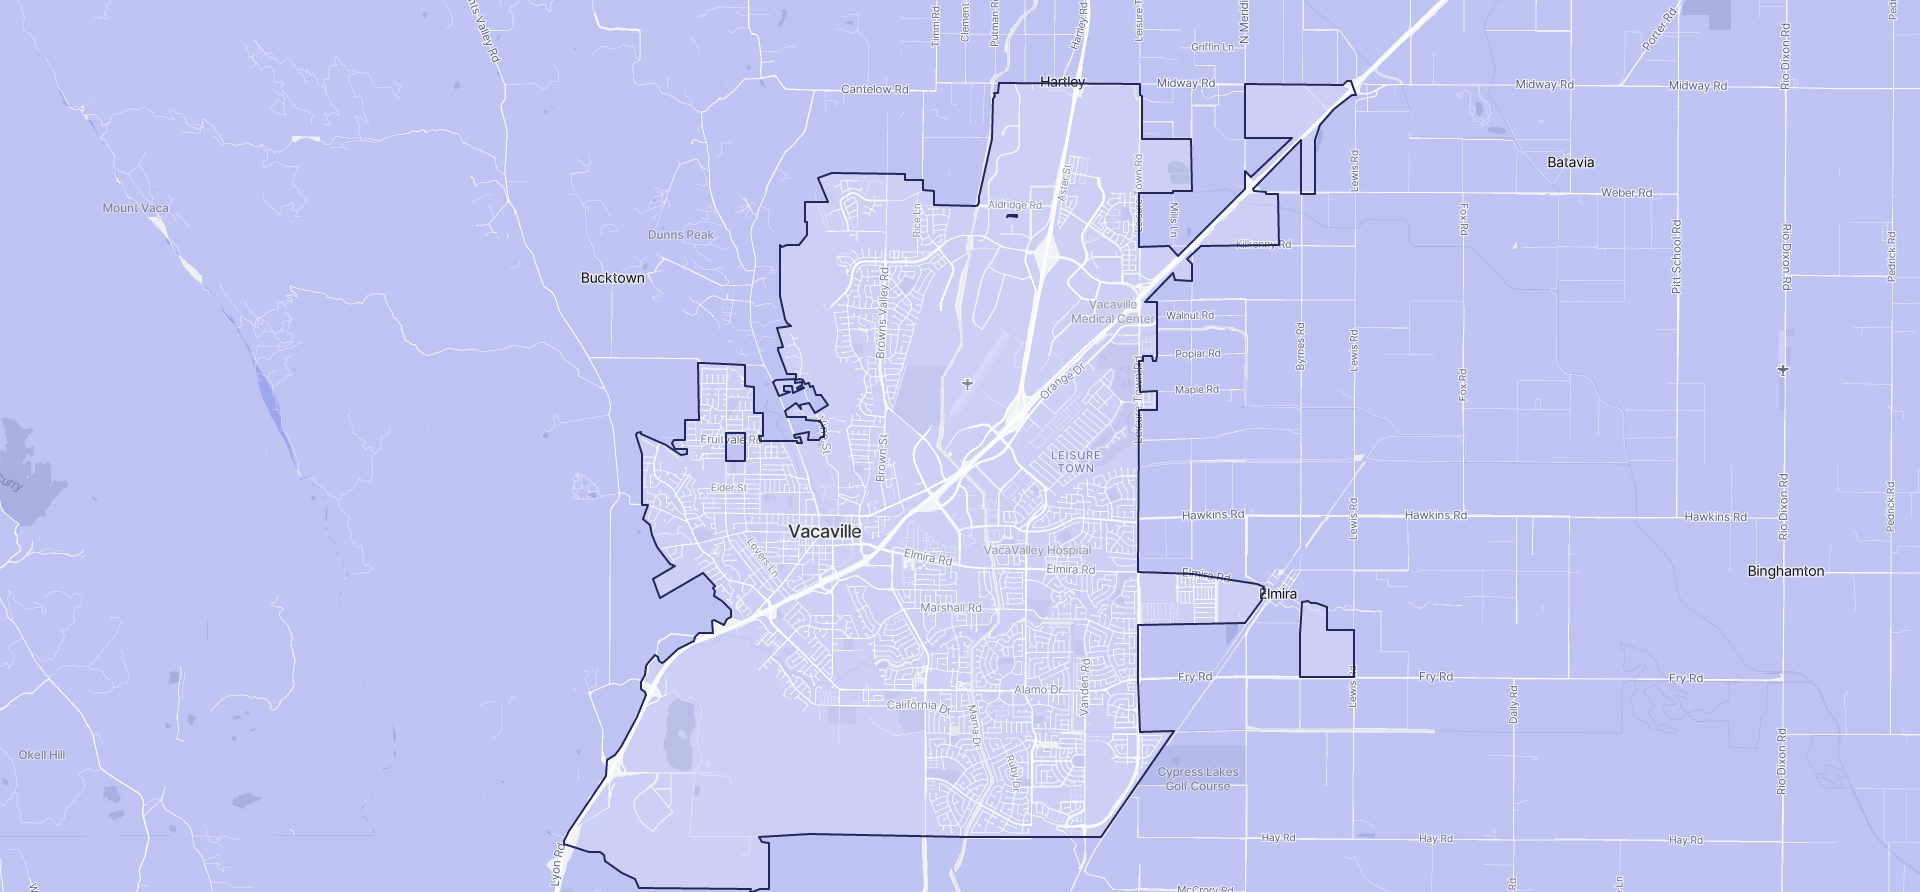 Image of Vacaville boundaries on a map.